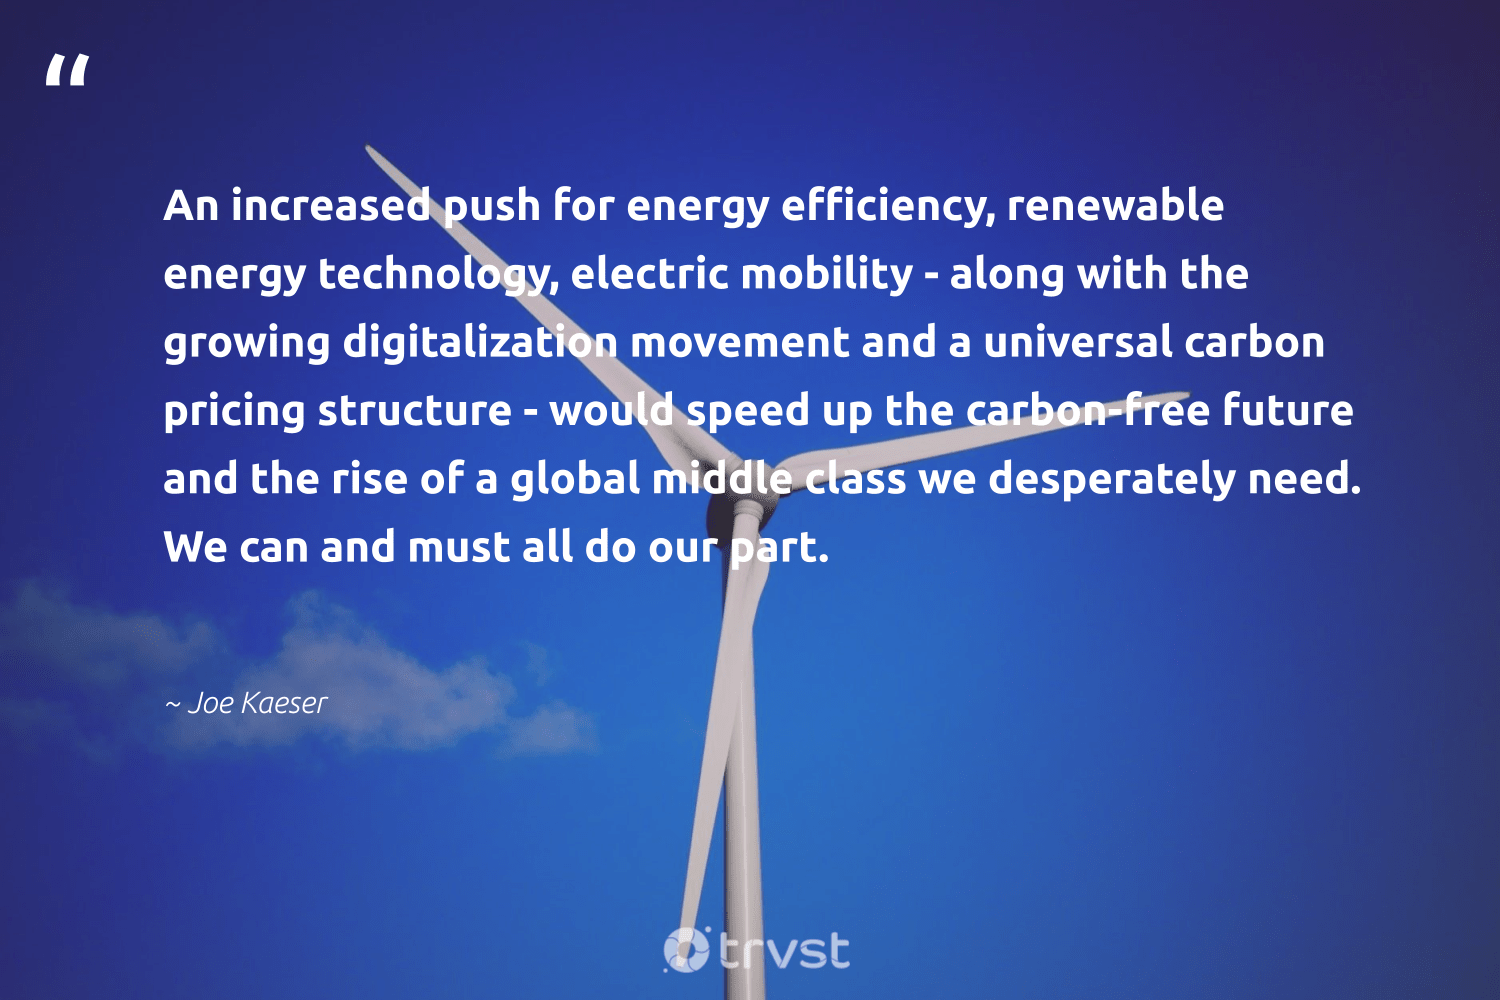 """""""An increased push for energy efficiency, renewable energy technology, electric mobility - along with the growing digitalization movement and a universal carbon pricing structure - would speed up the carbon-free future and the rise of a global middle class we desperately need. We can and must all do our part.""""  - Joe Kaeser #trvst #quotes #renewableenergy #carbon #carbonfree #energy #renewable #100percentclean #cleanenergy #planetearth #environment #dotherightthing"""